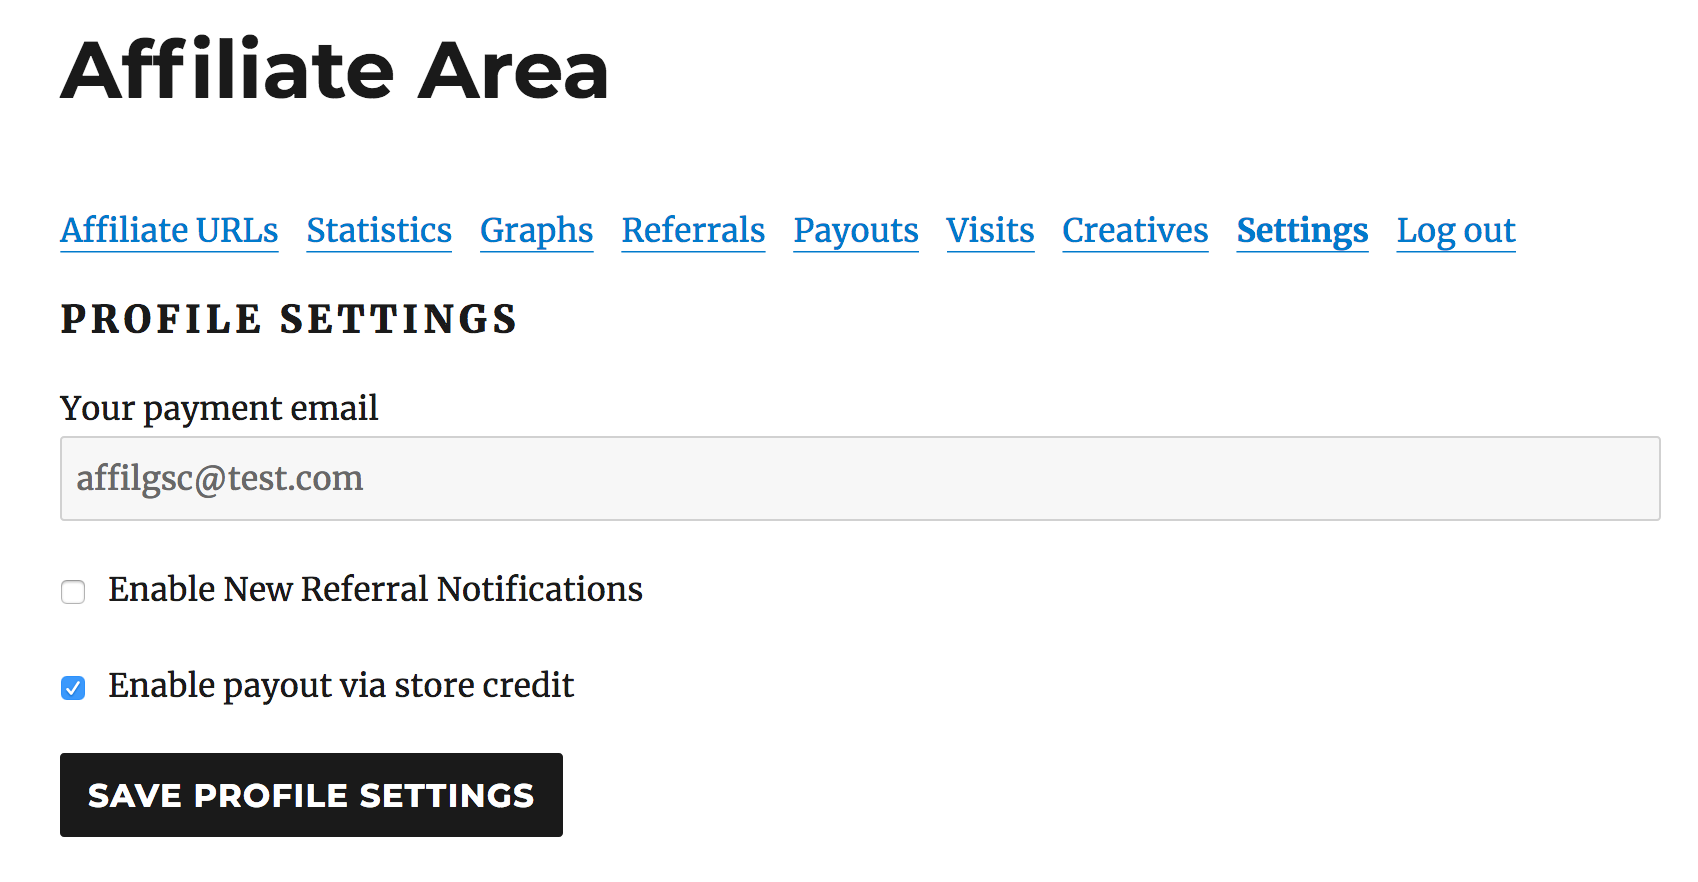 affiliate area settings to opt-in for Store Credit